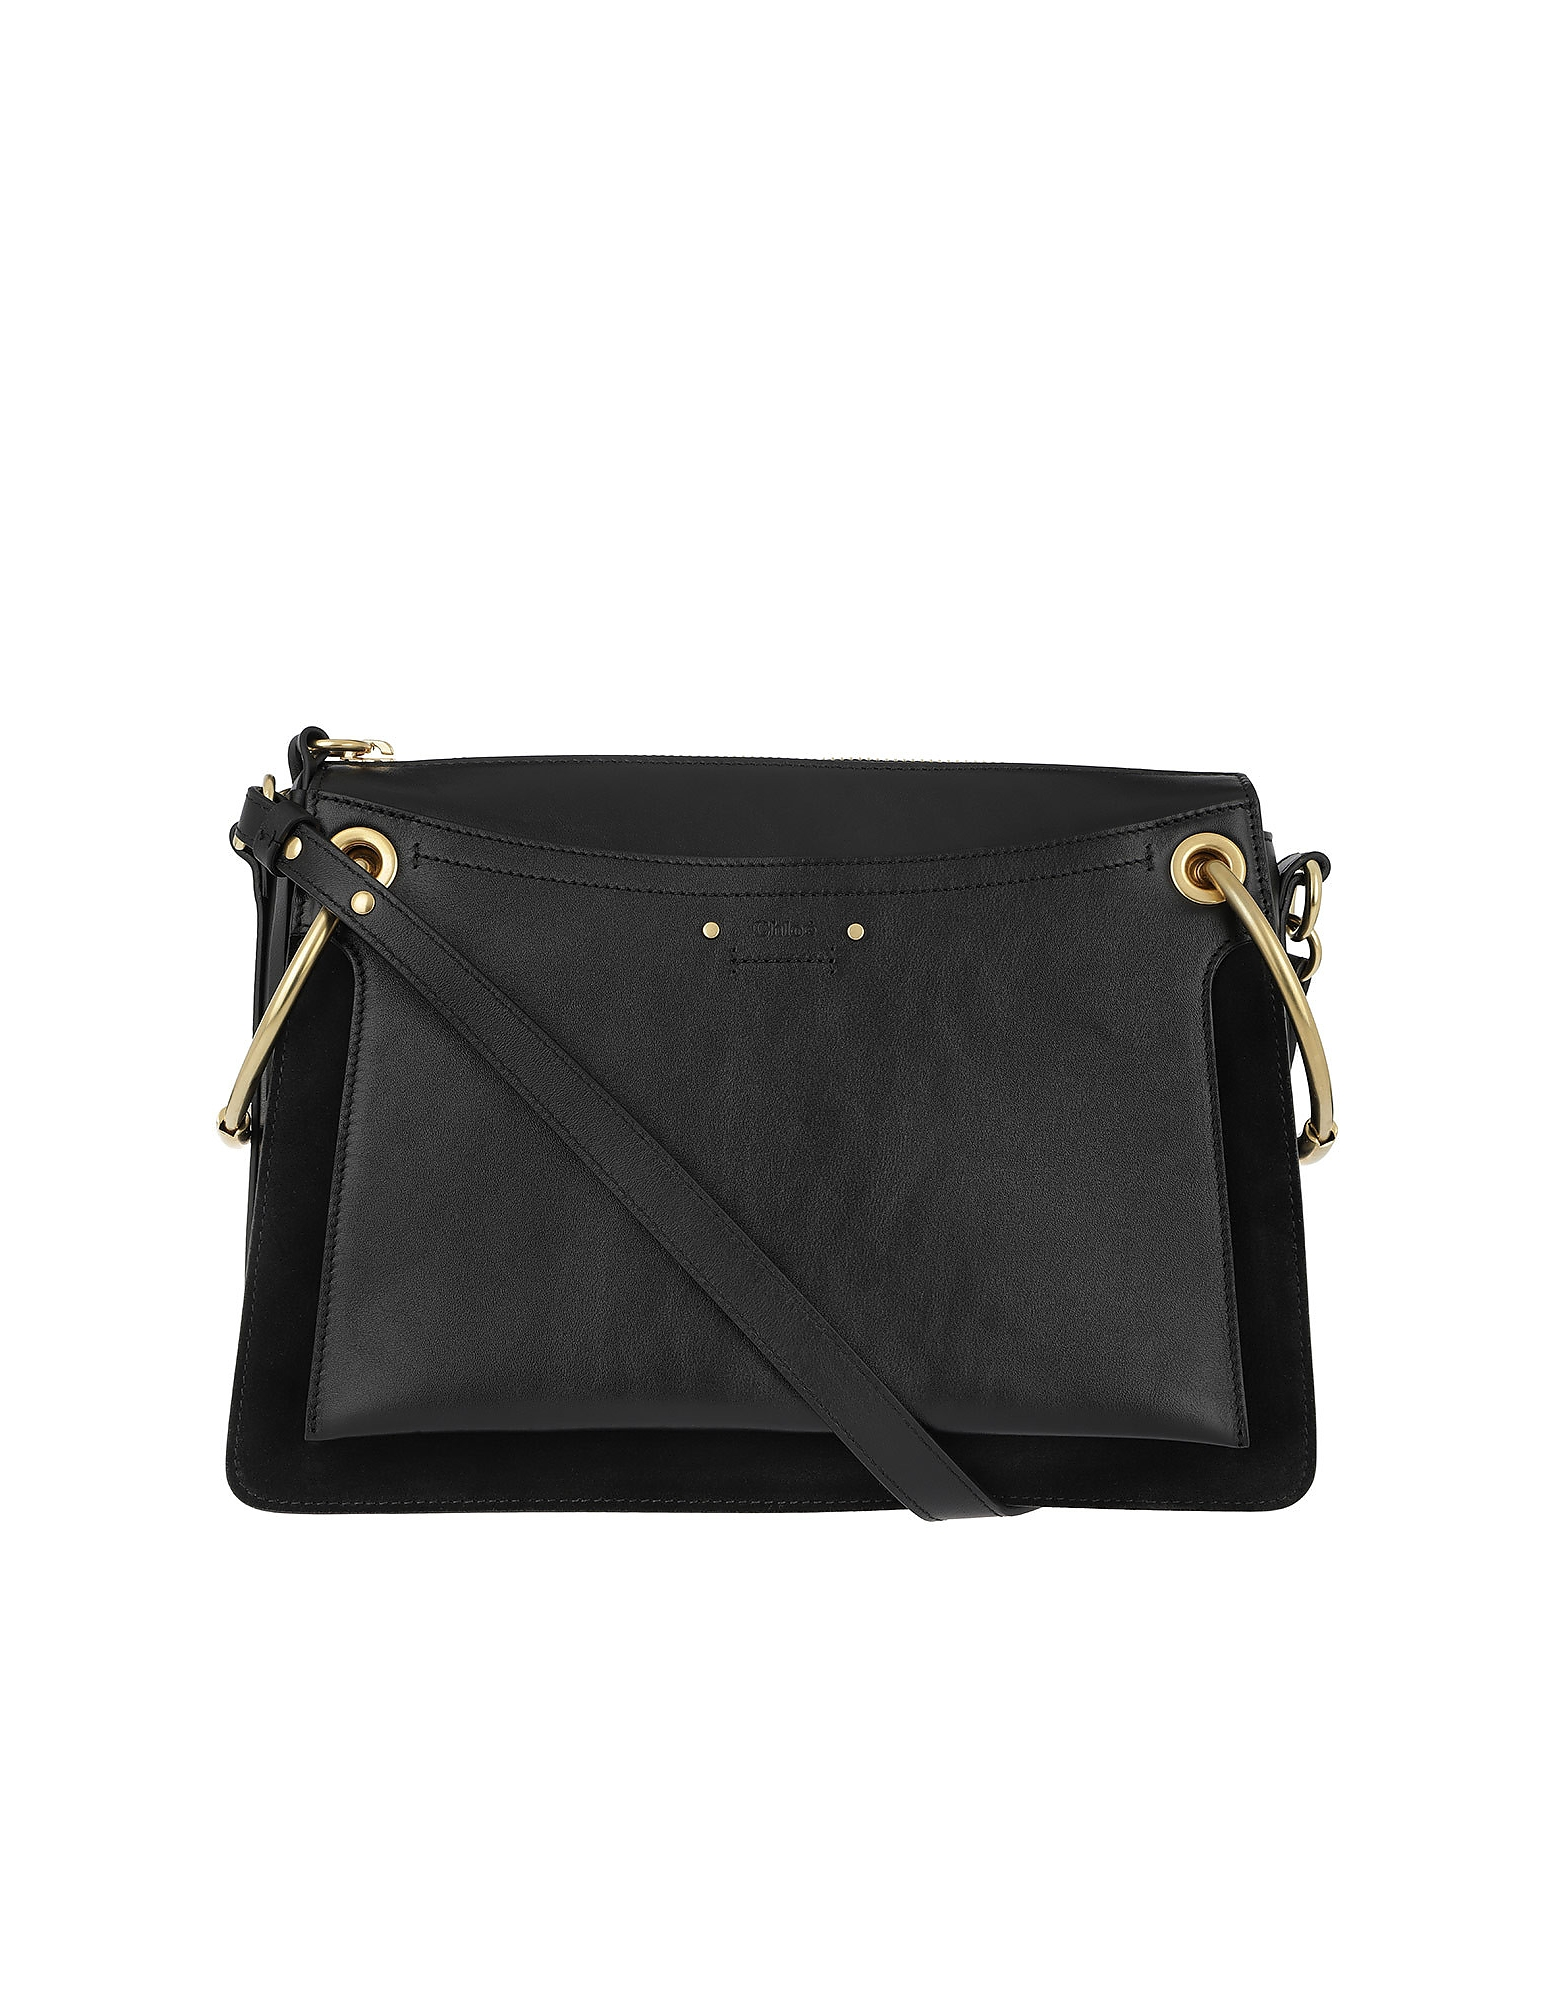 Chloe Handbags, Roy Bag Medium Black